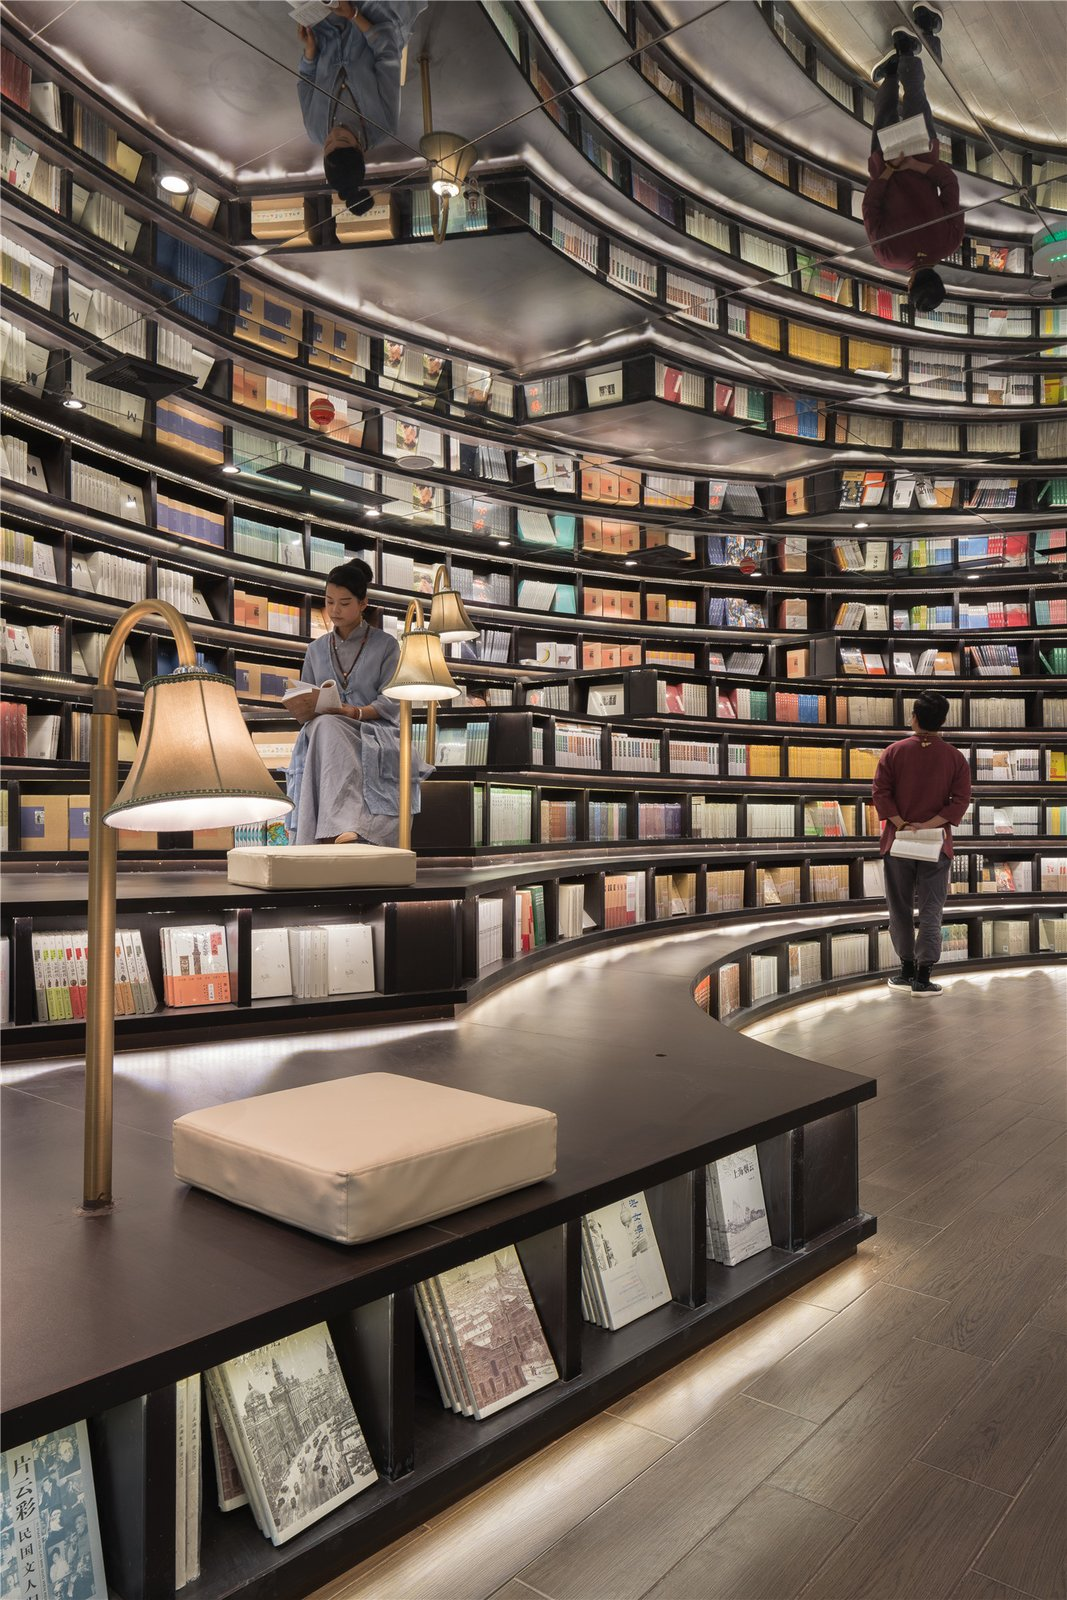 Photo 7 of 7 in This Otherworldly Bookstore in China Provides a Mesmerizing Atmosphere For Reading